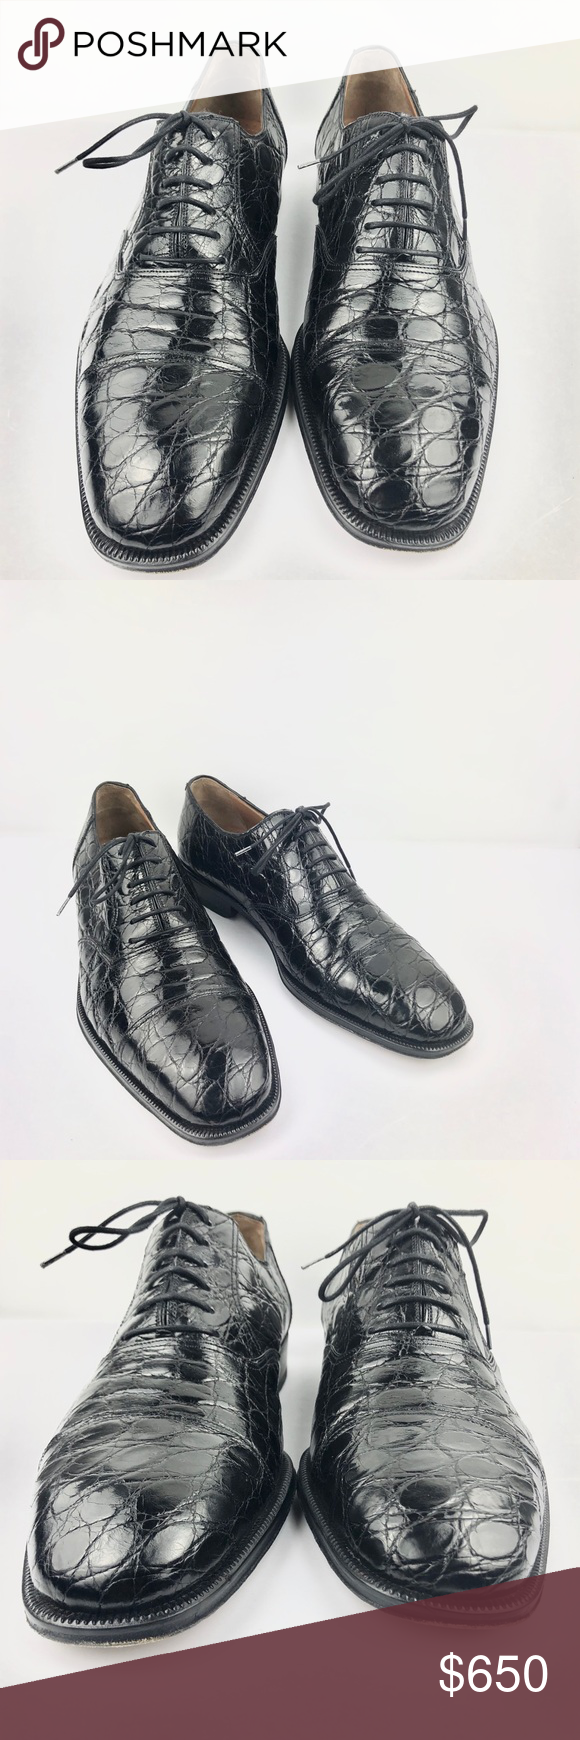 MAGNANNI Crocodile Oxford Shoes Size 10.5 D EU 44 MAGNANNI Crocodile Oxford Cap ...